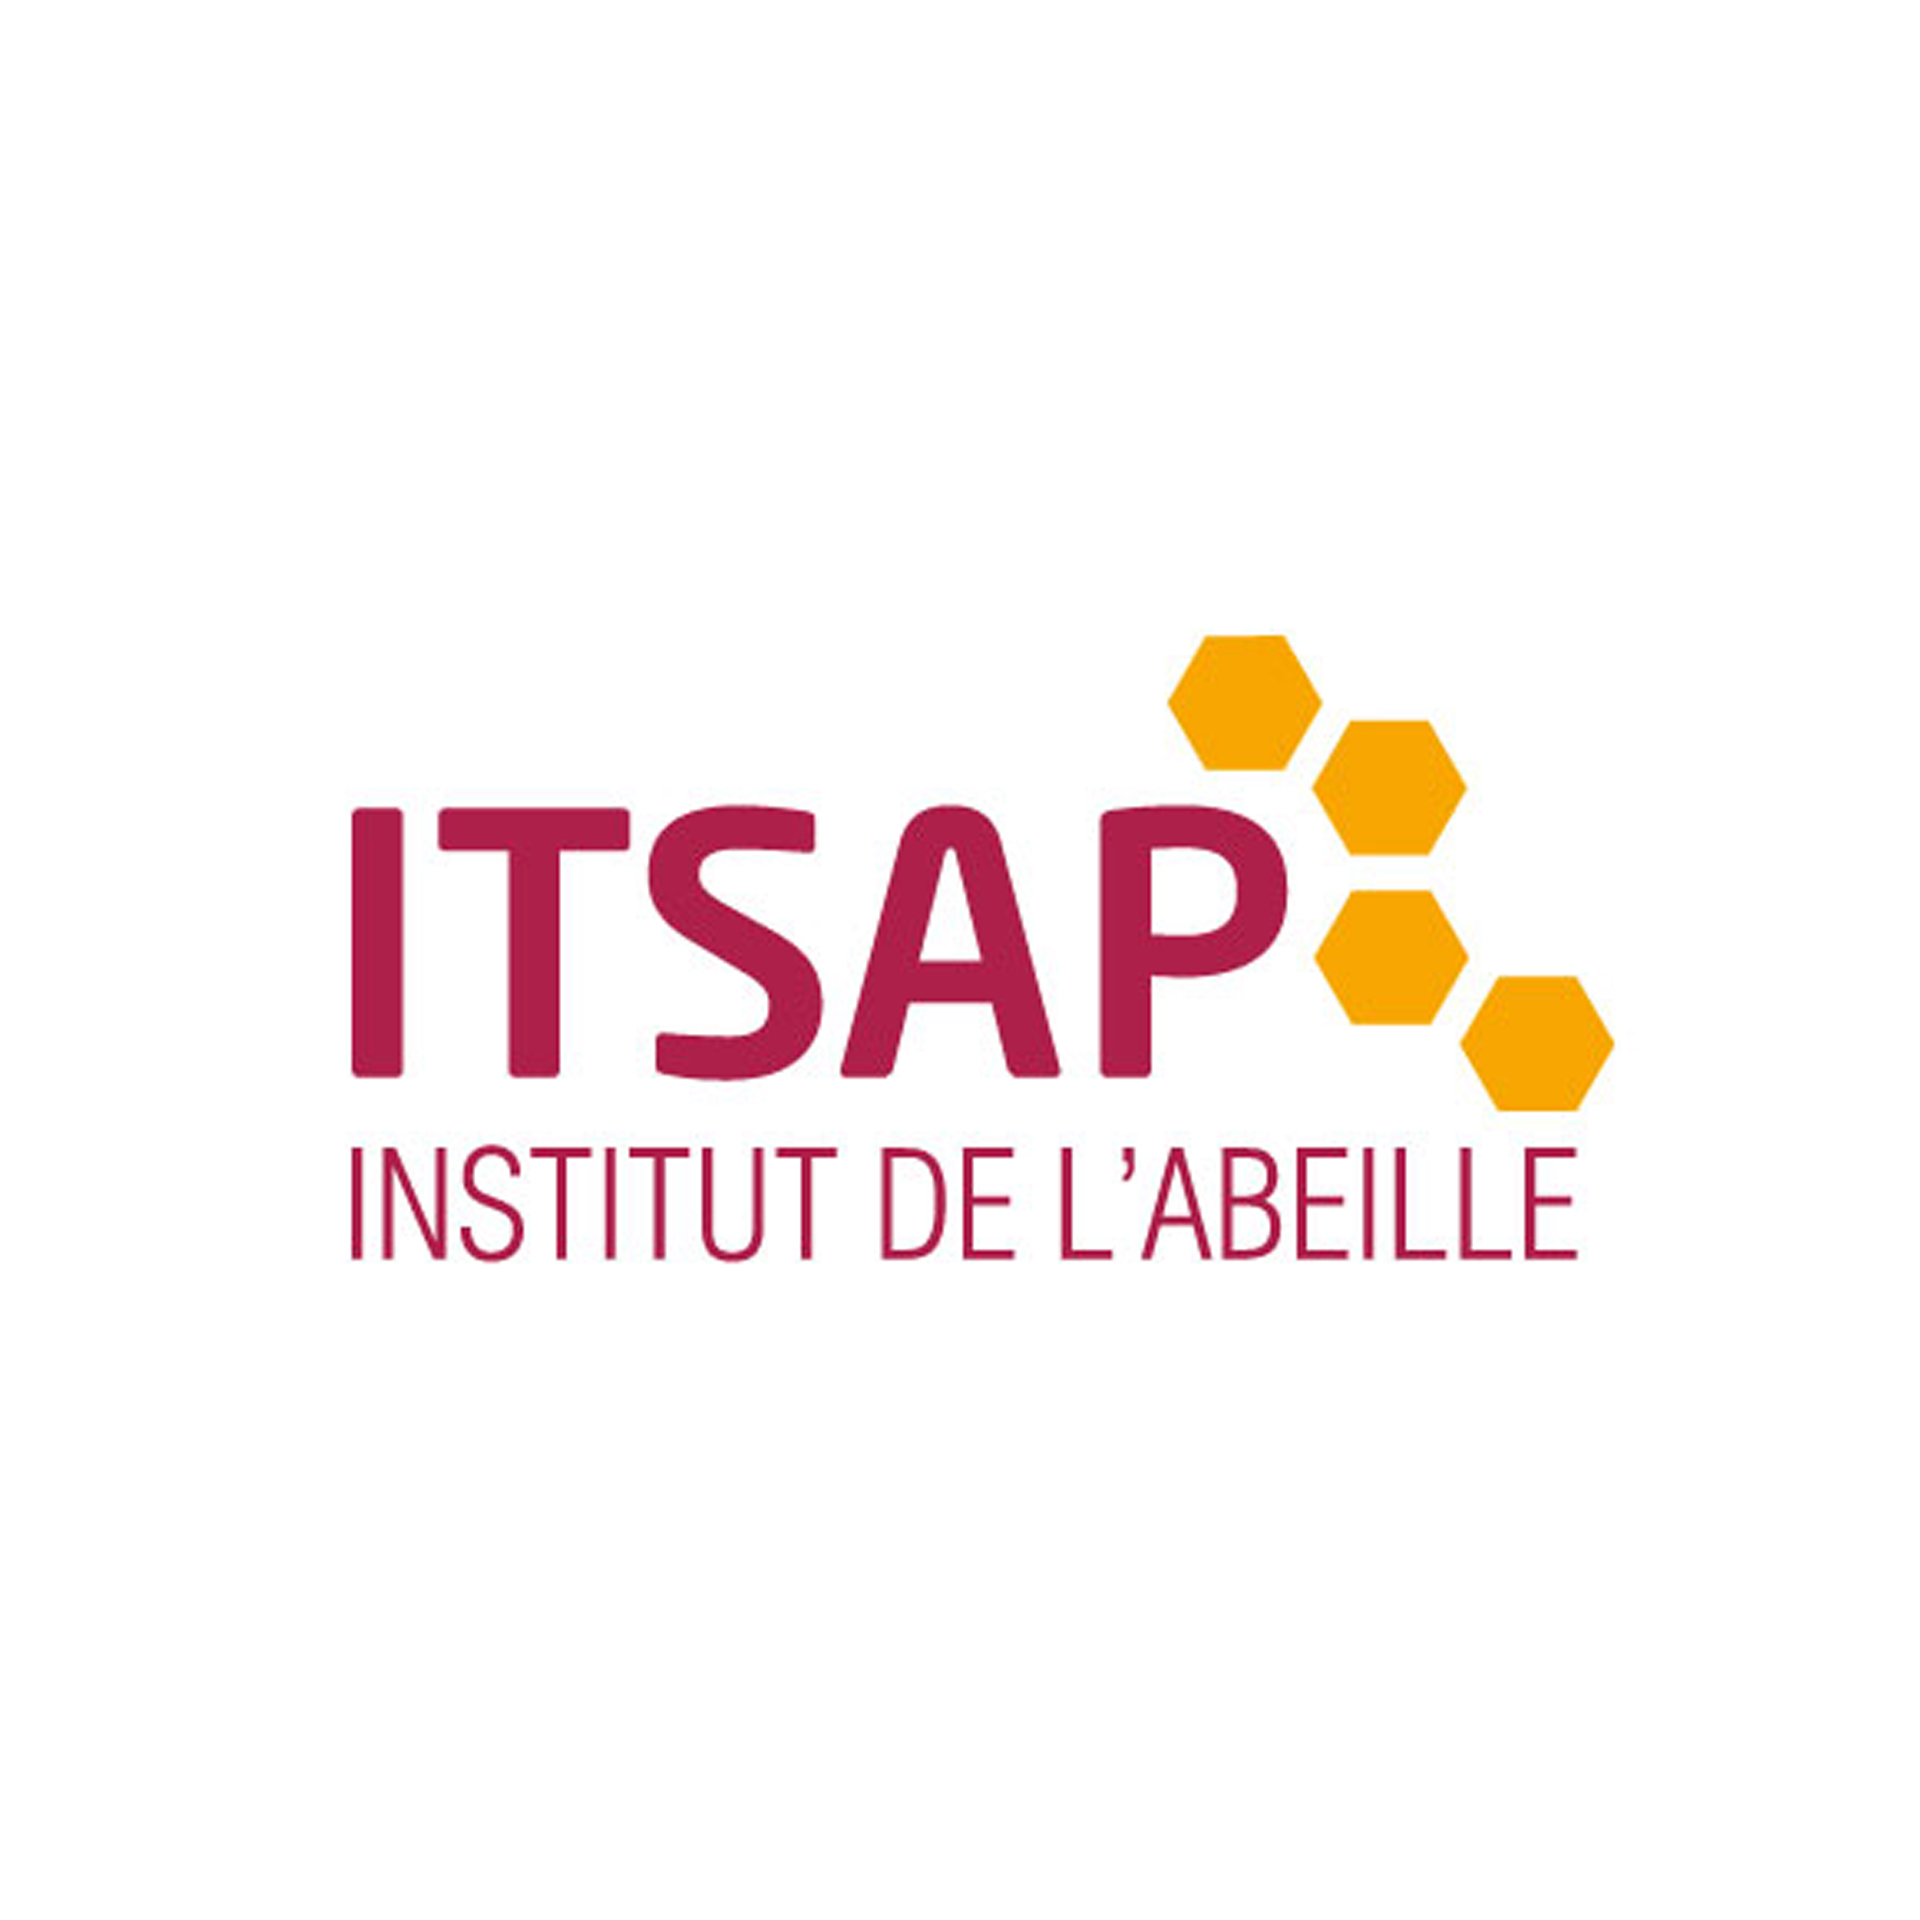 Association - ITSAP-Institut de l'abeille